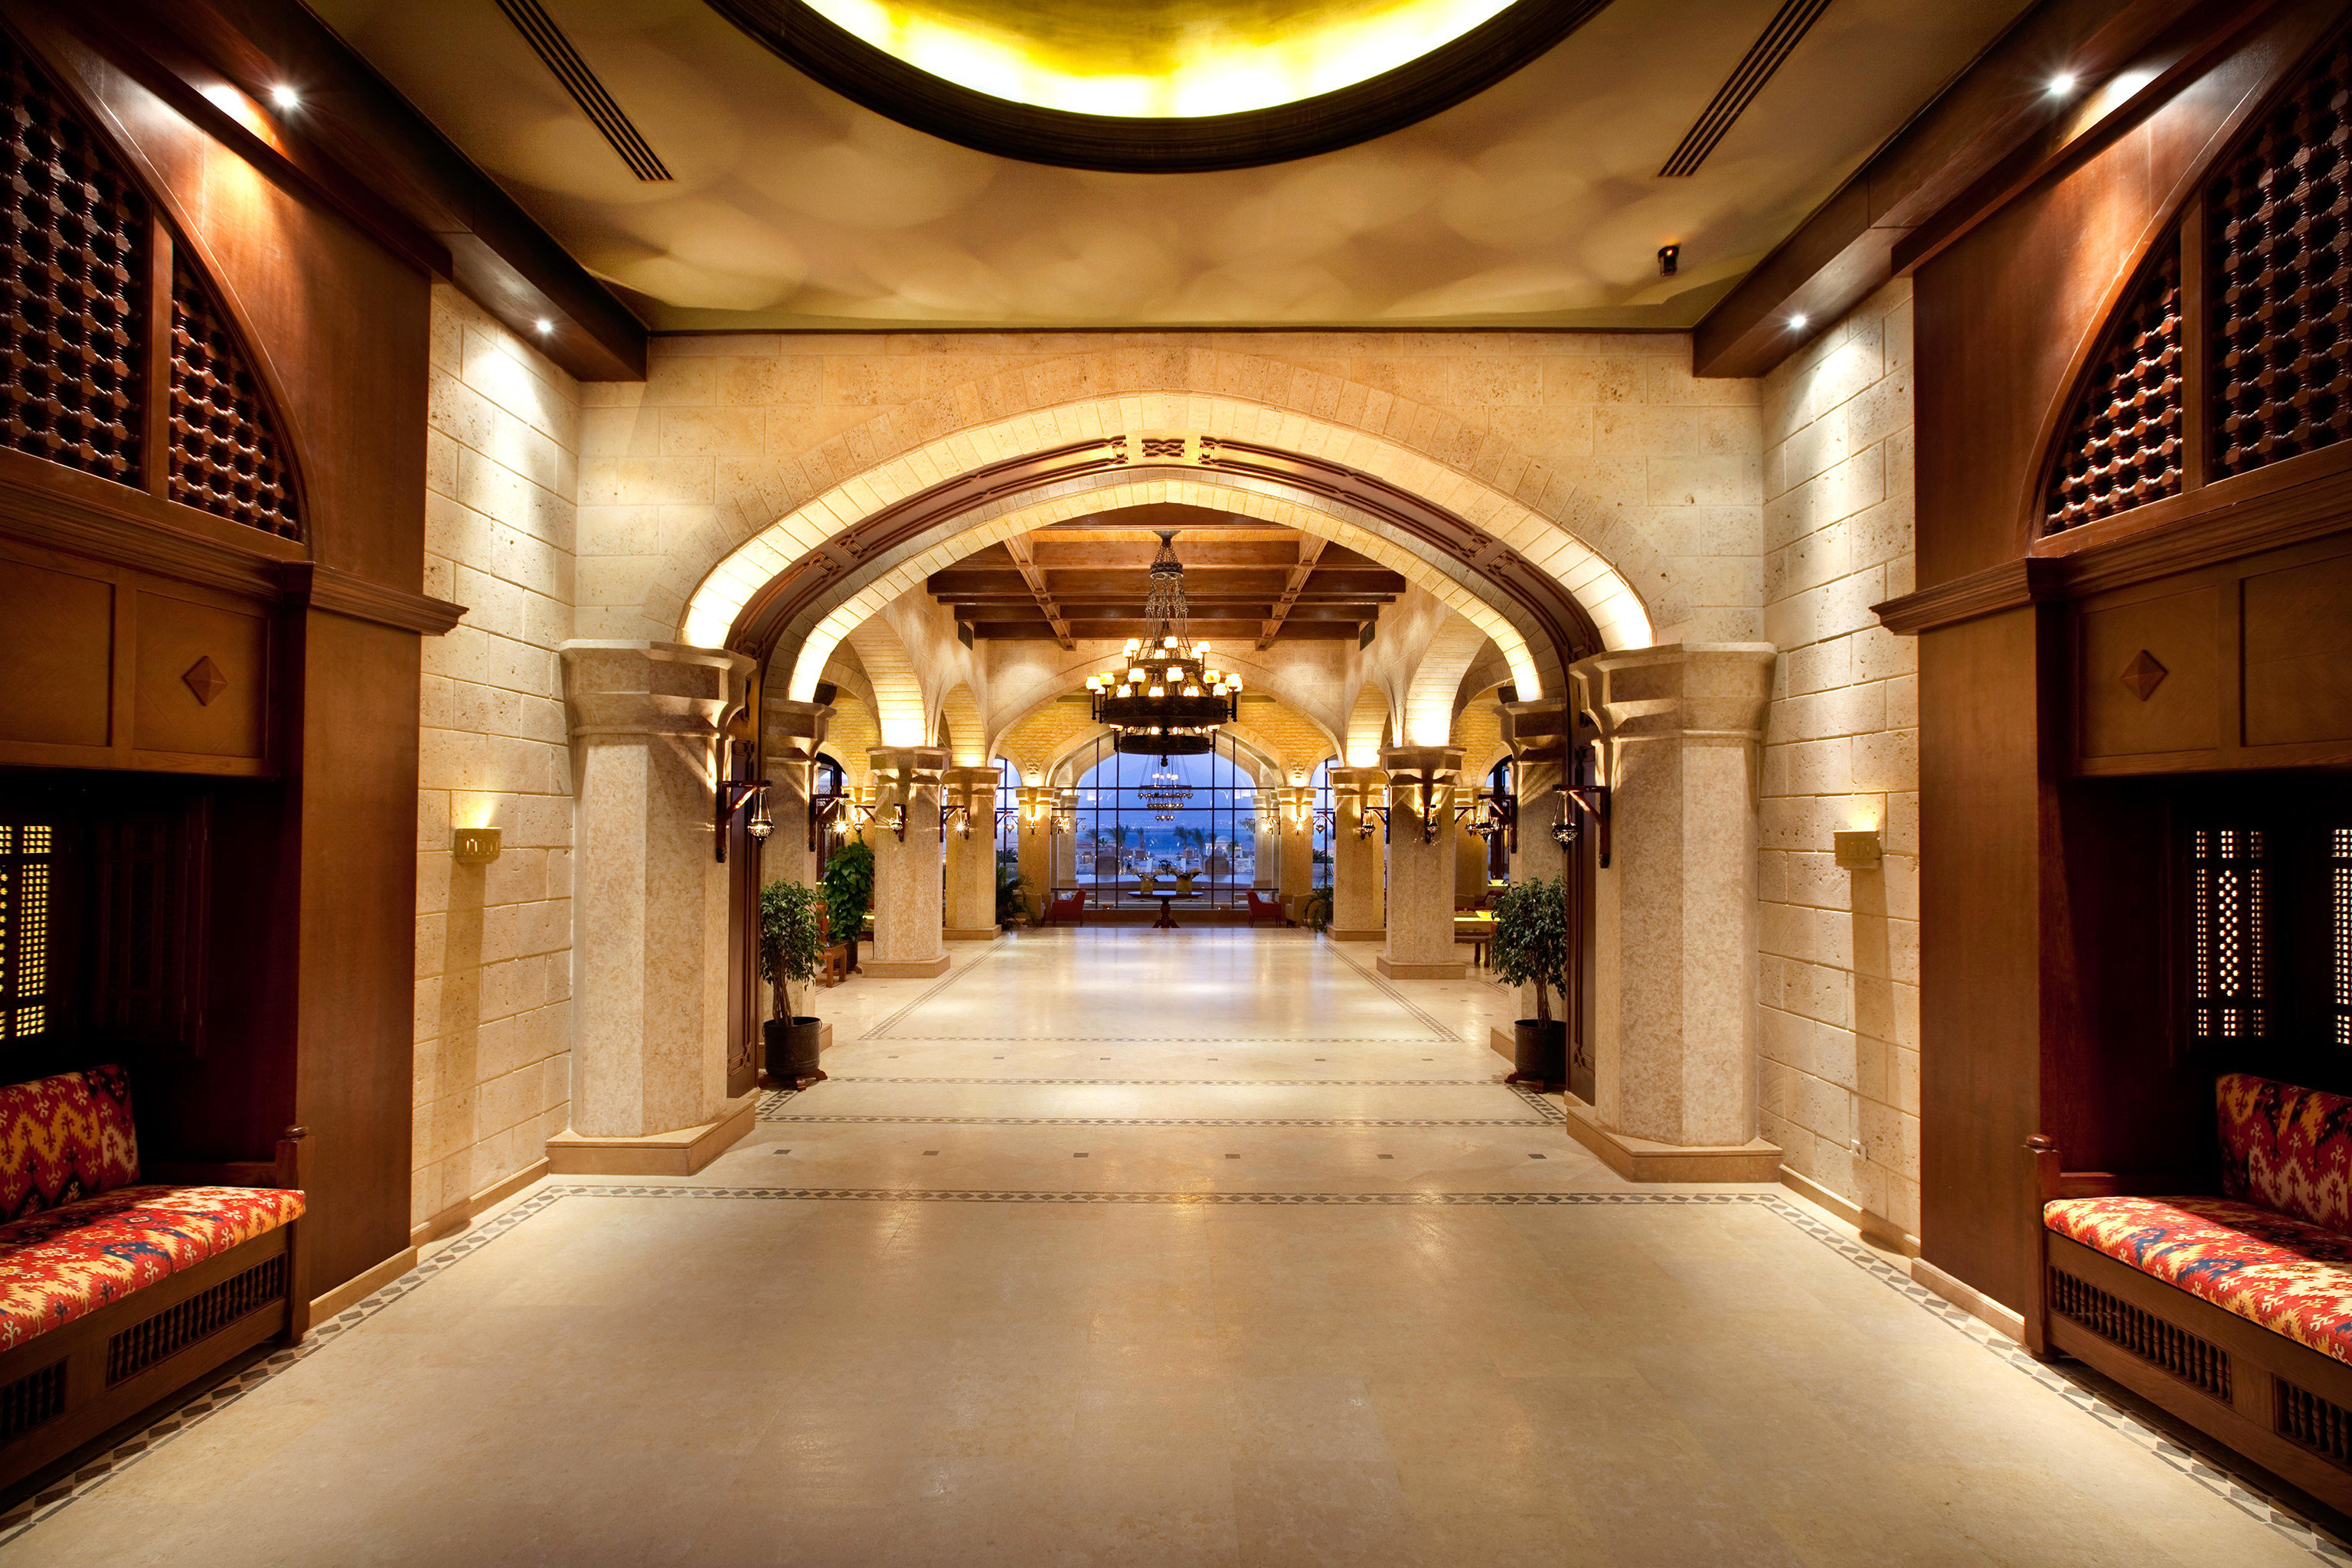 building Lobby hall retail tourist attraction stone